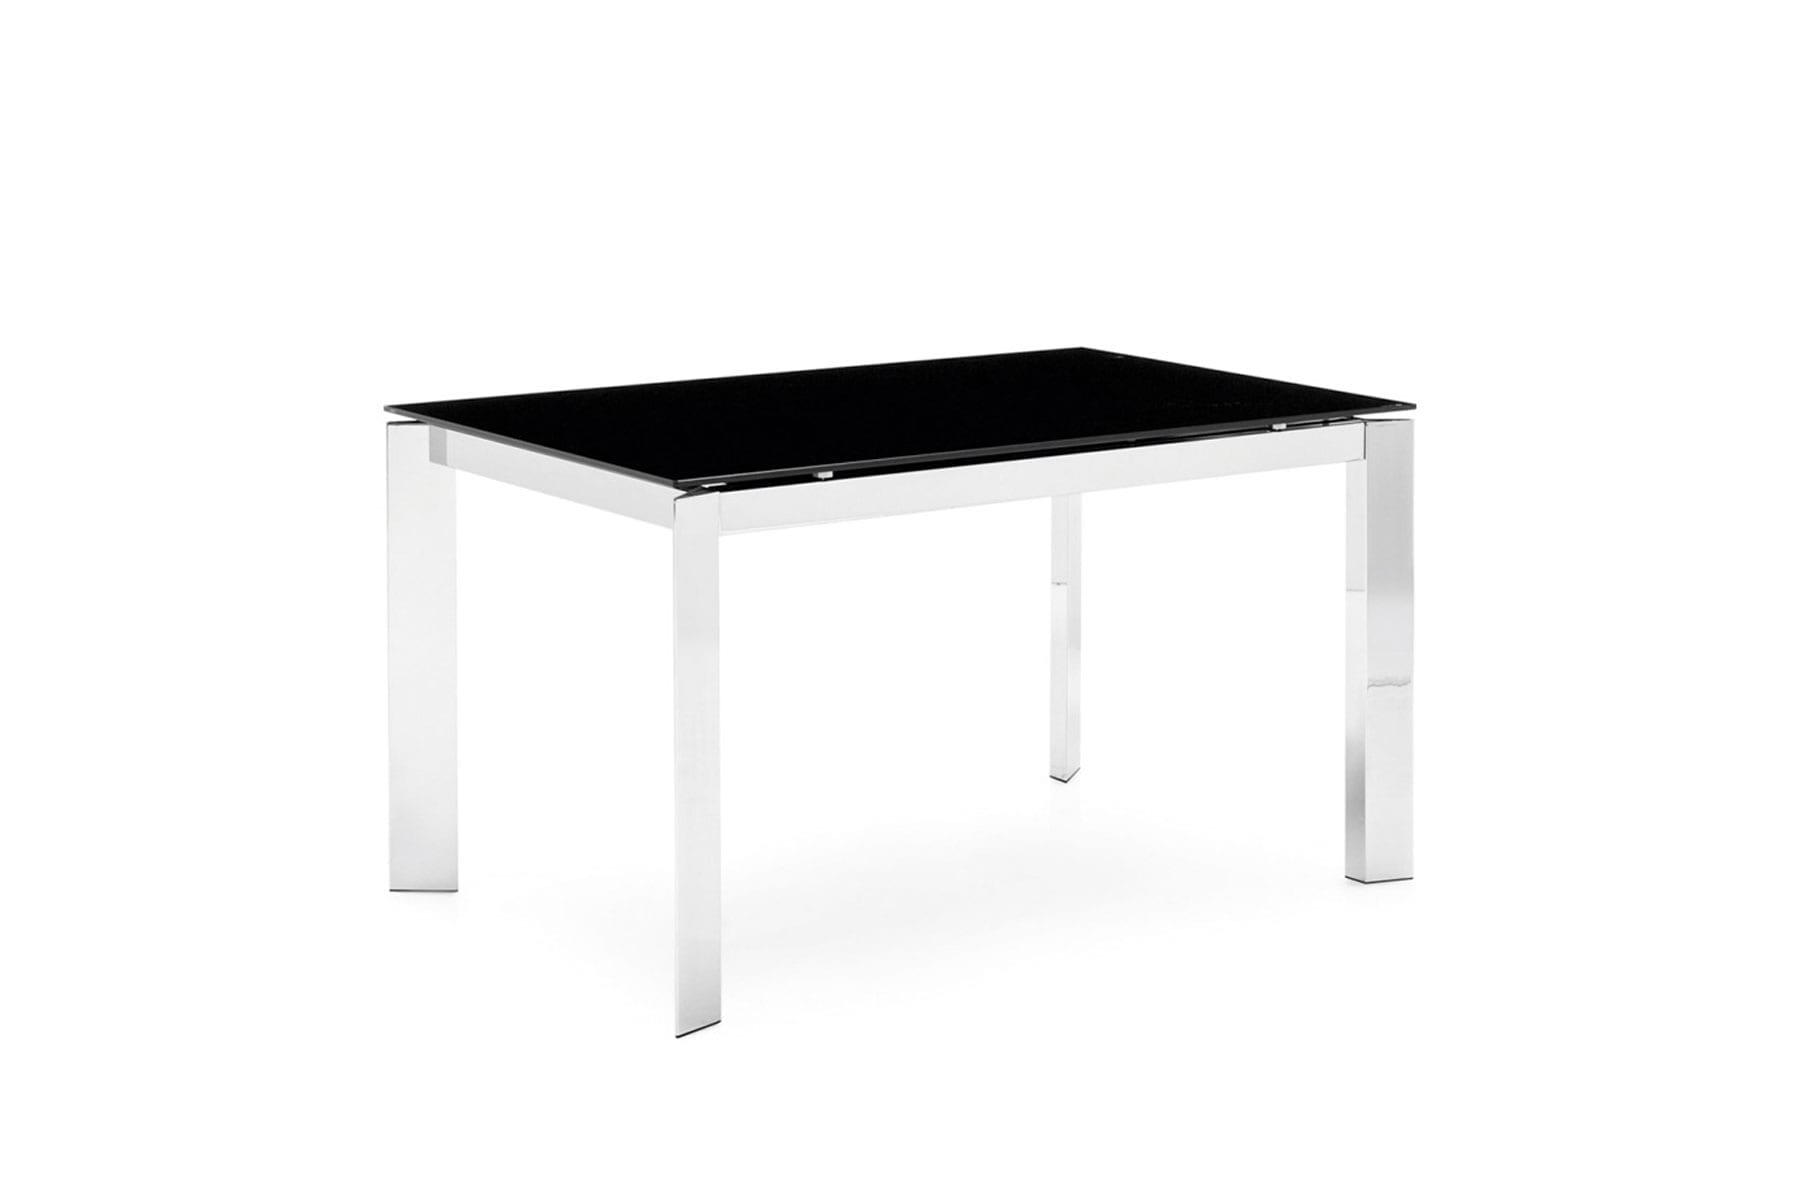 Calligaris baron dining table mckenzie willis for Calligaris baron